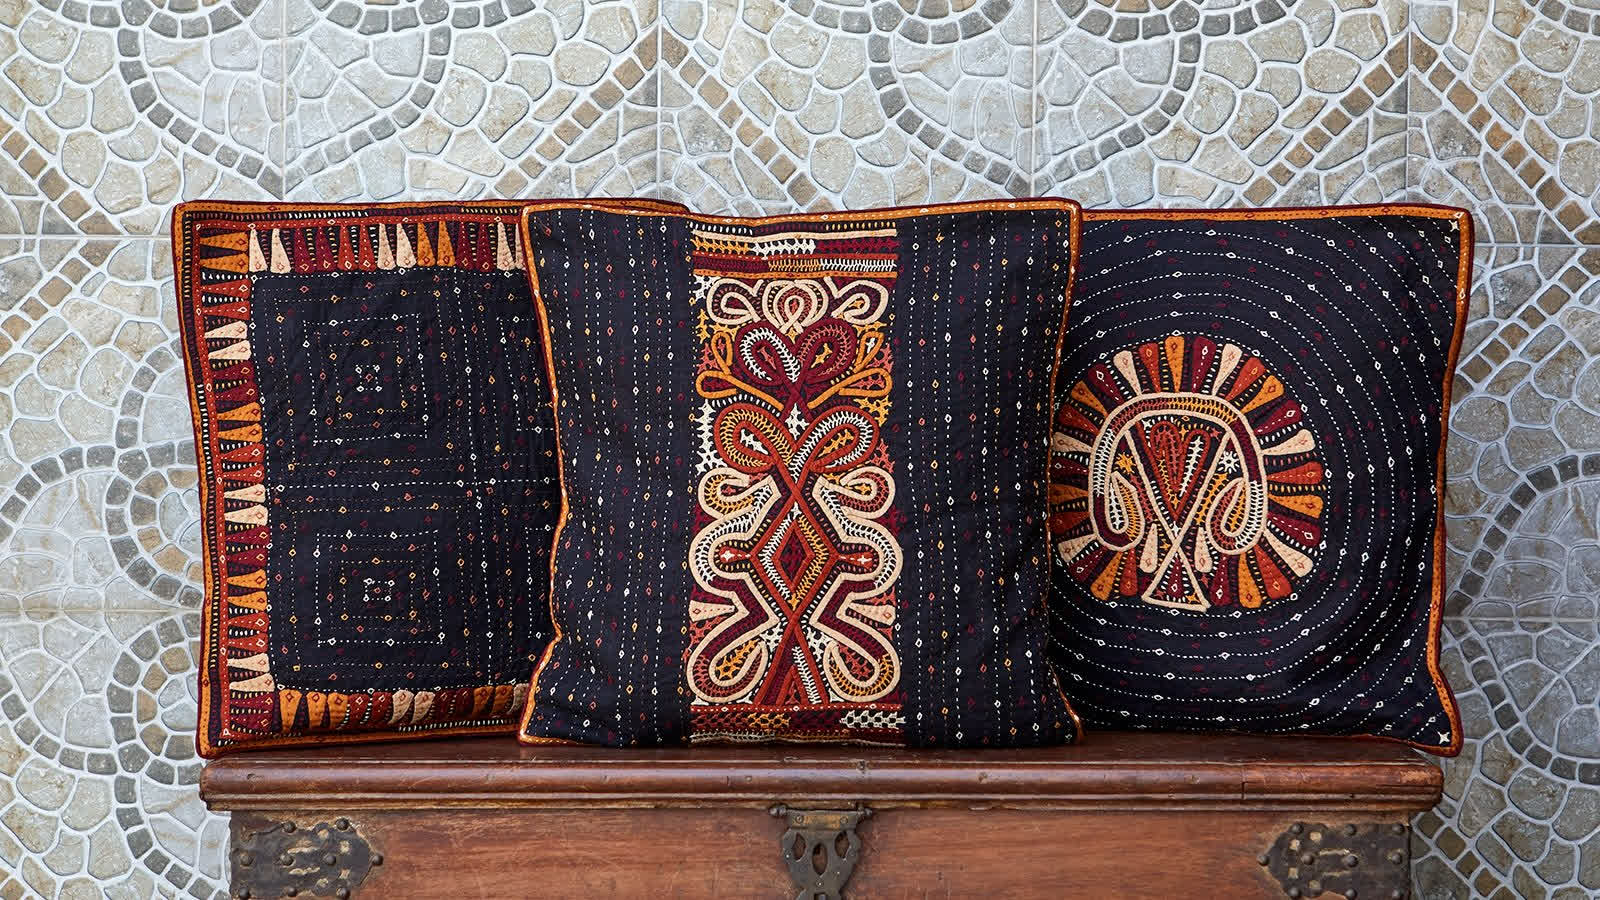 Cushion covers with Rabari embroidery, made by the artisans of Qasab   Peepul Tree